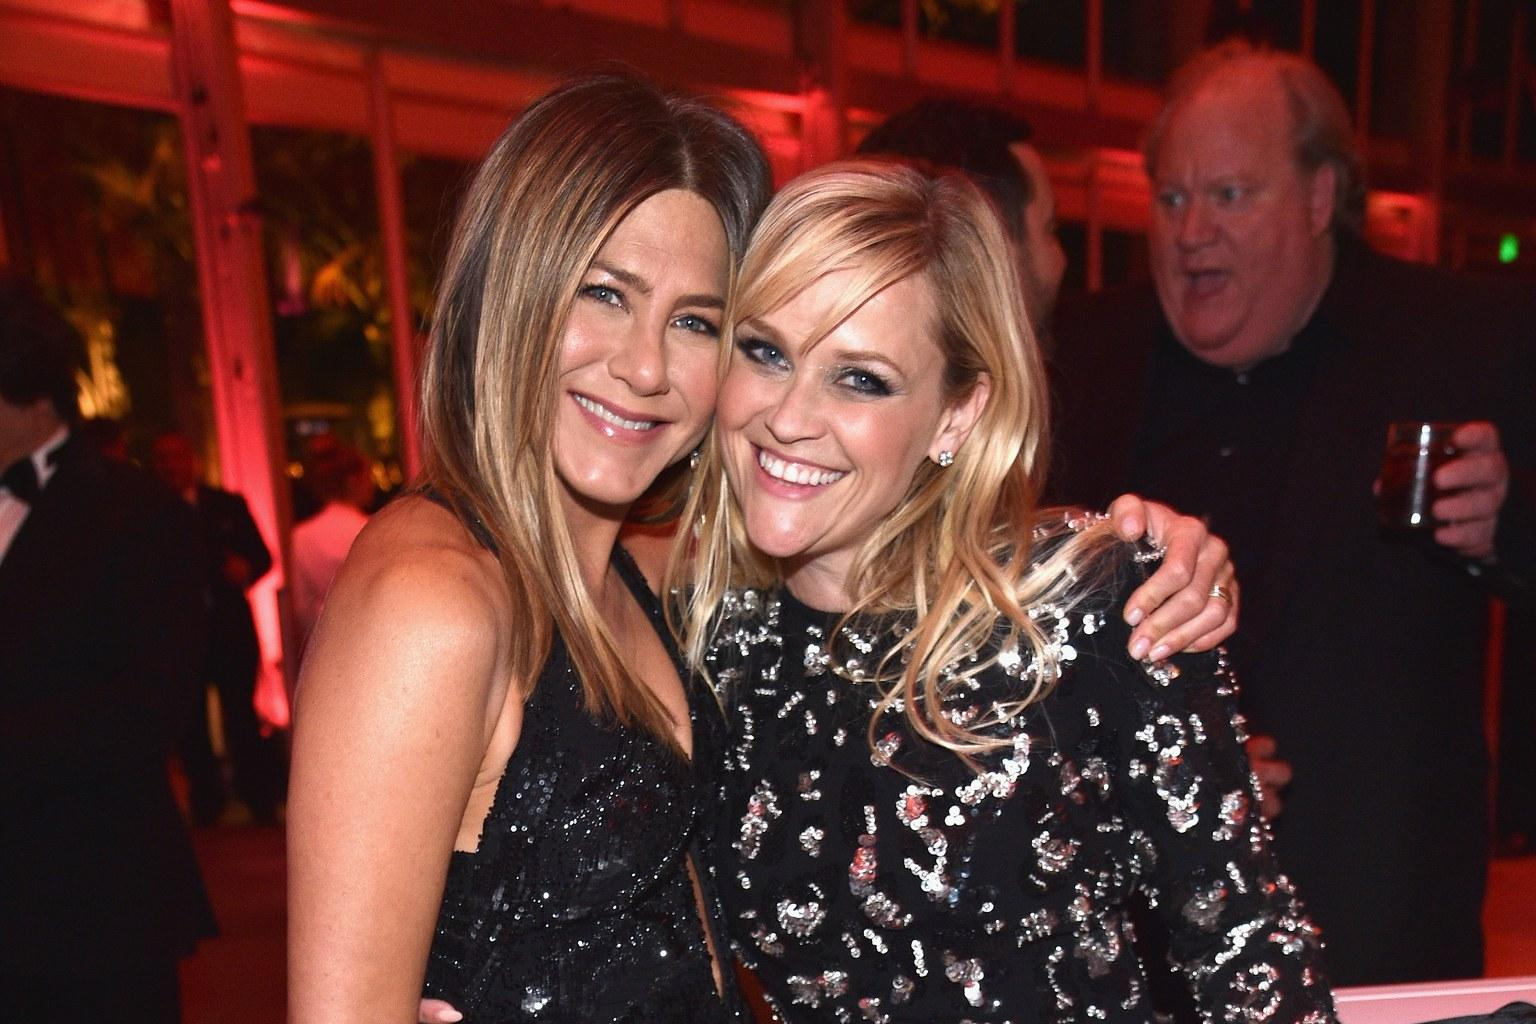 Reese Witherspoon Tumbles Down The Stairs At Jennifer Aniston's Birthday Party